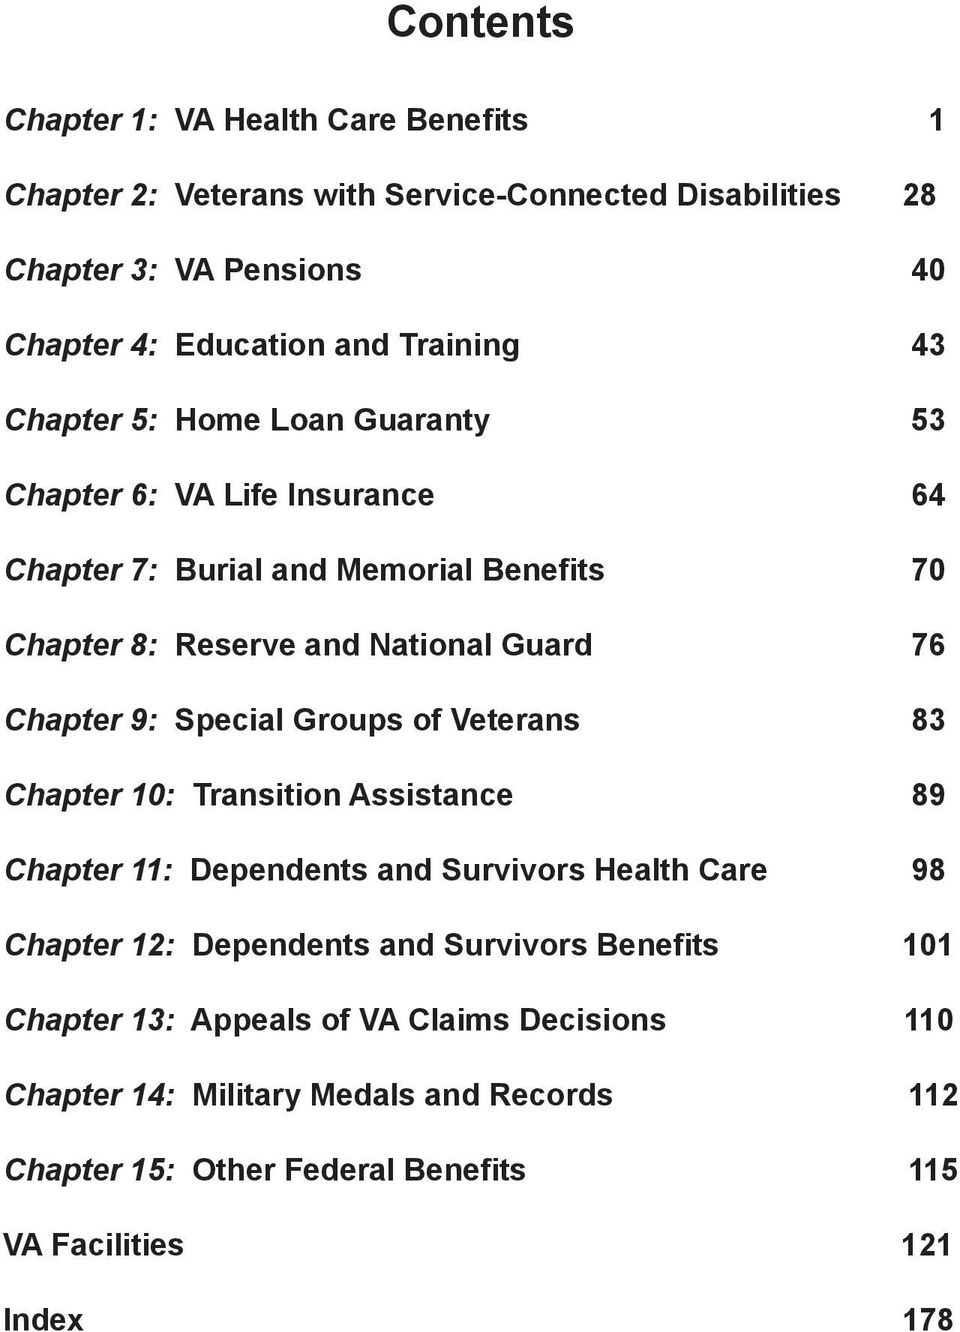 Special Groups of Veterans 64 70 76 83 Chapter 10: Transition Assistance 89 Chapter 11: Dependents and Survivors Health Care 98 Chapter 12: Dependents and